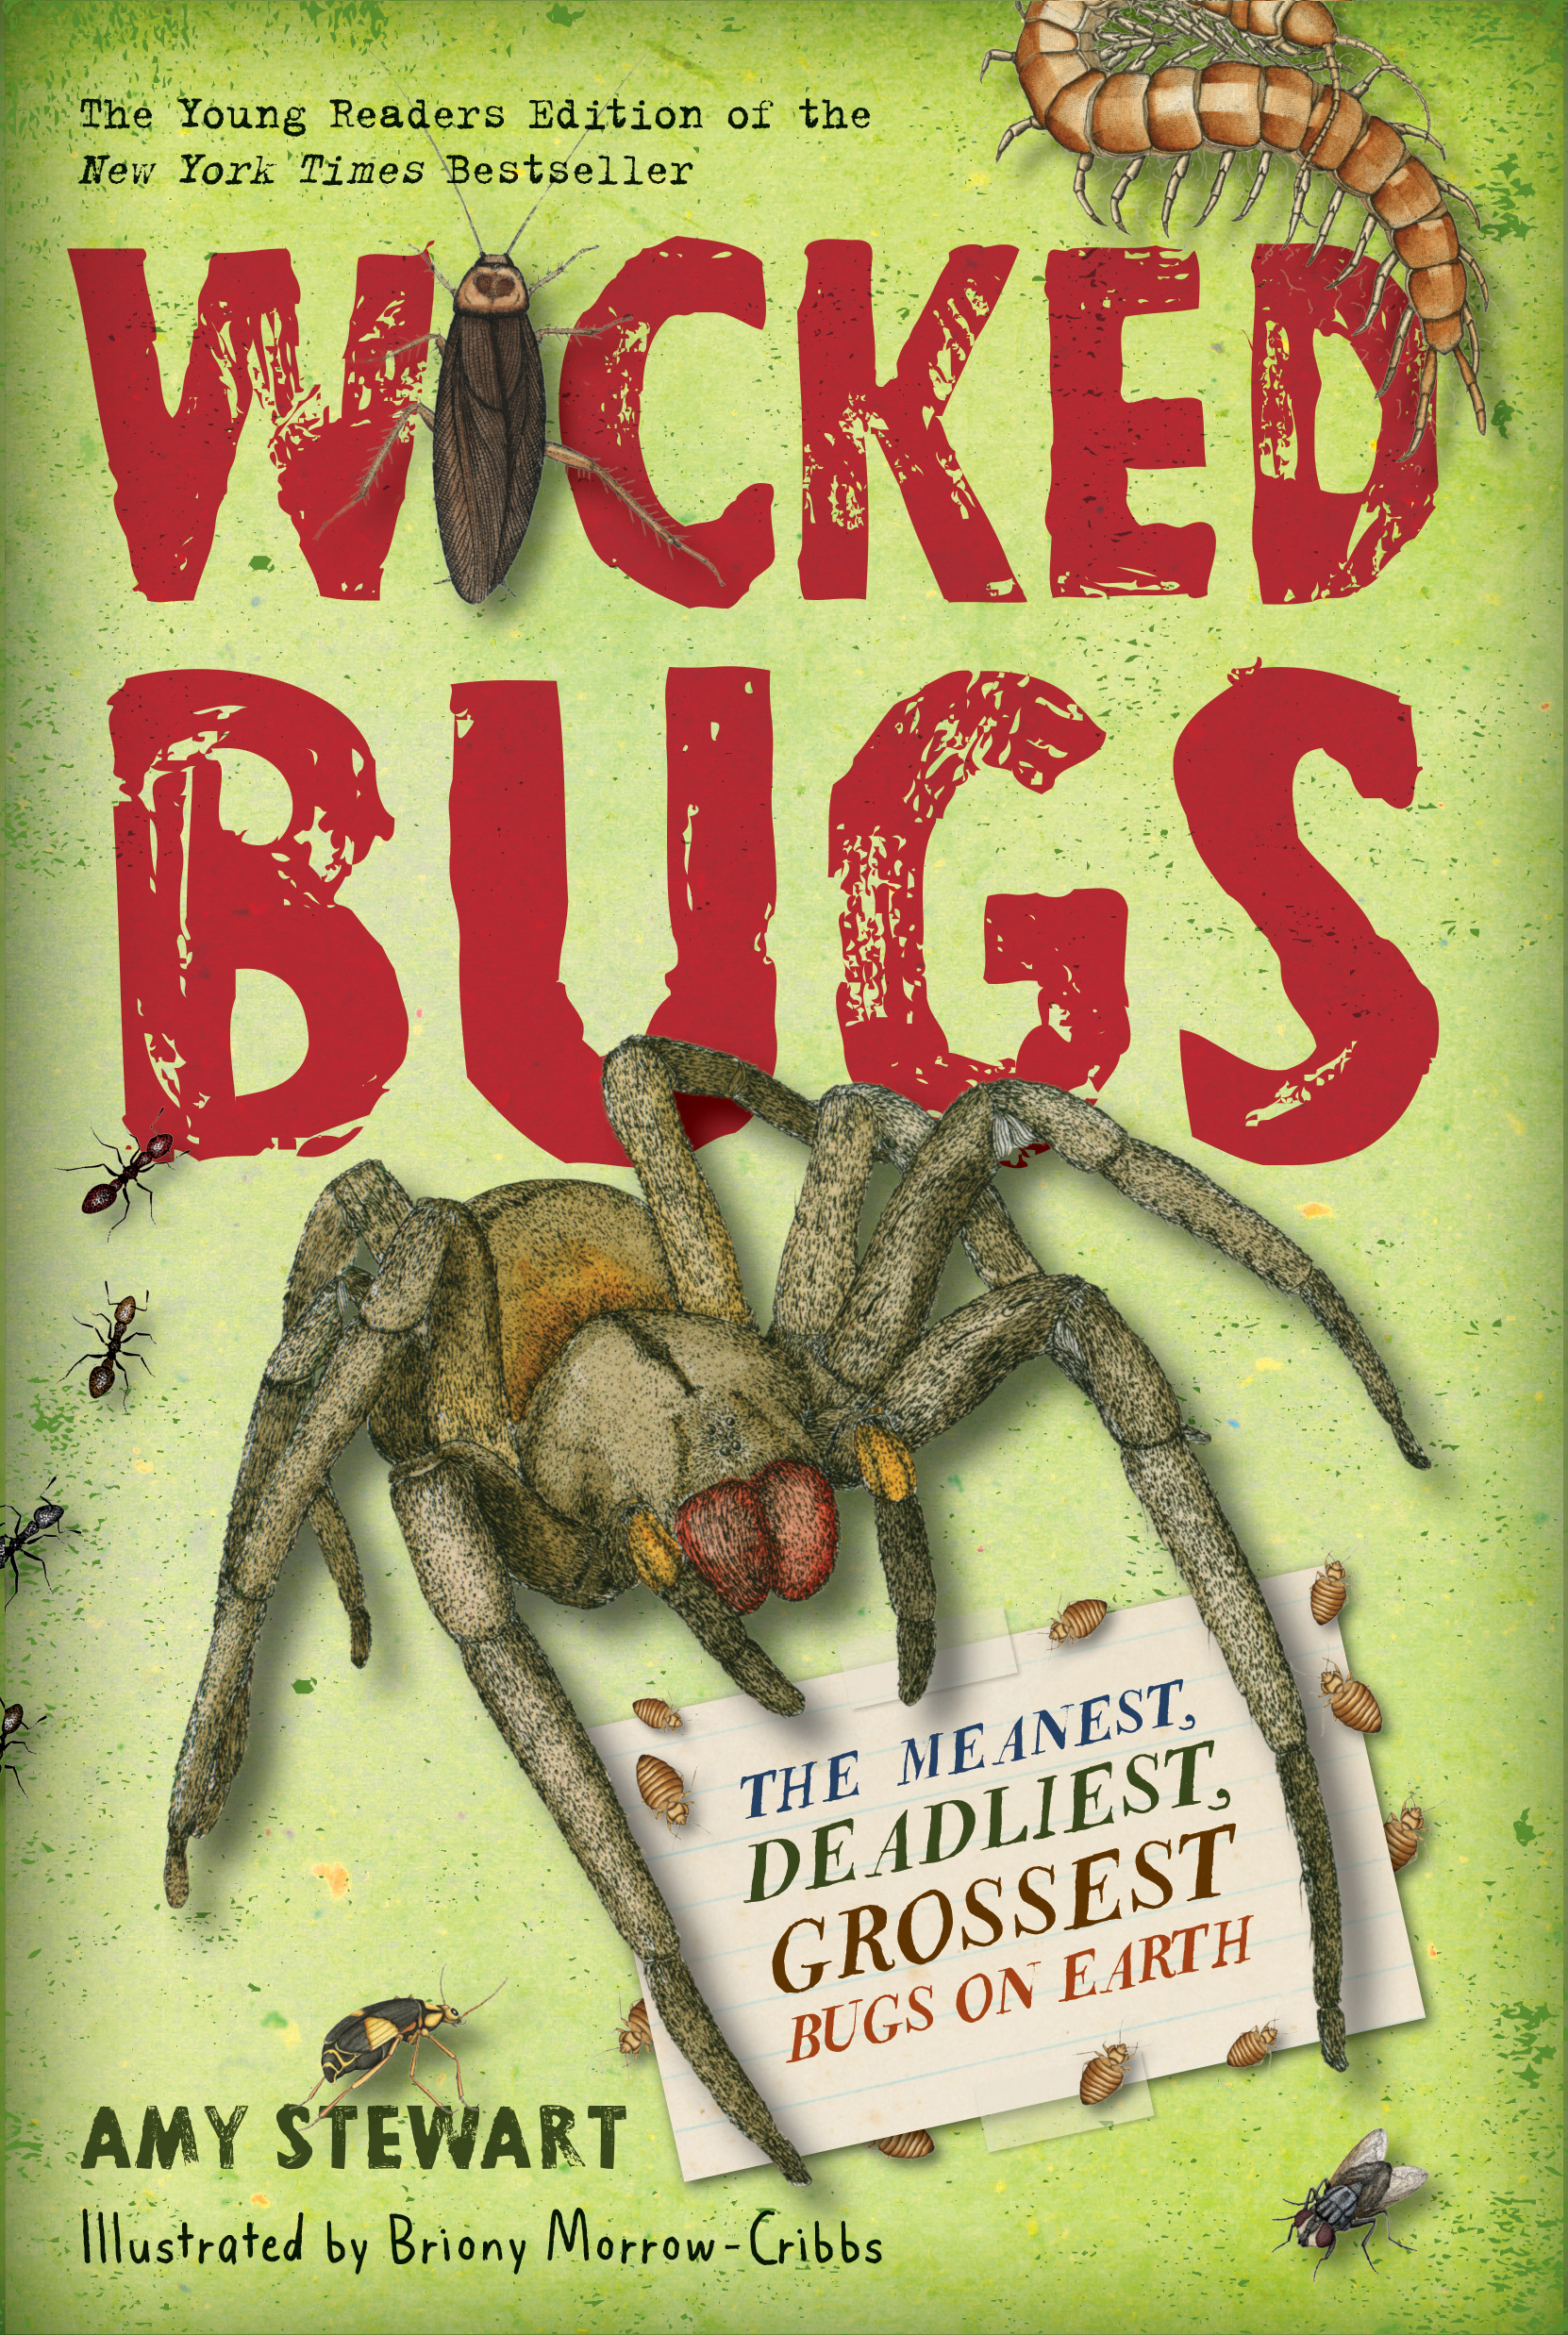 Interview with Author Amy Stewart and a Wicked Bug Giveaway